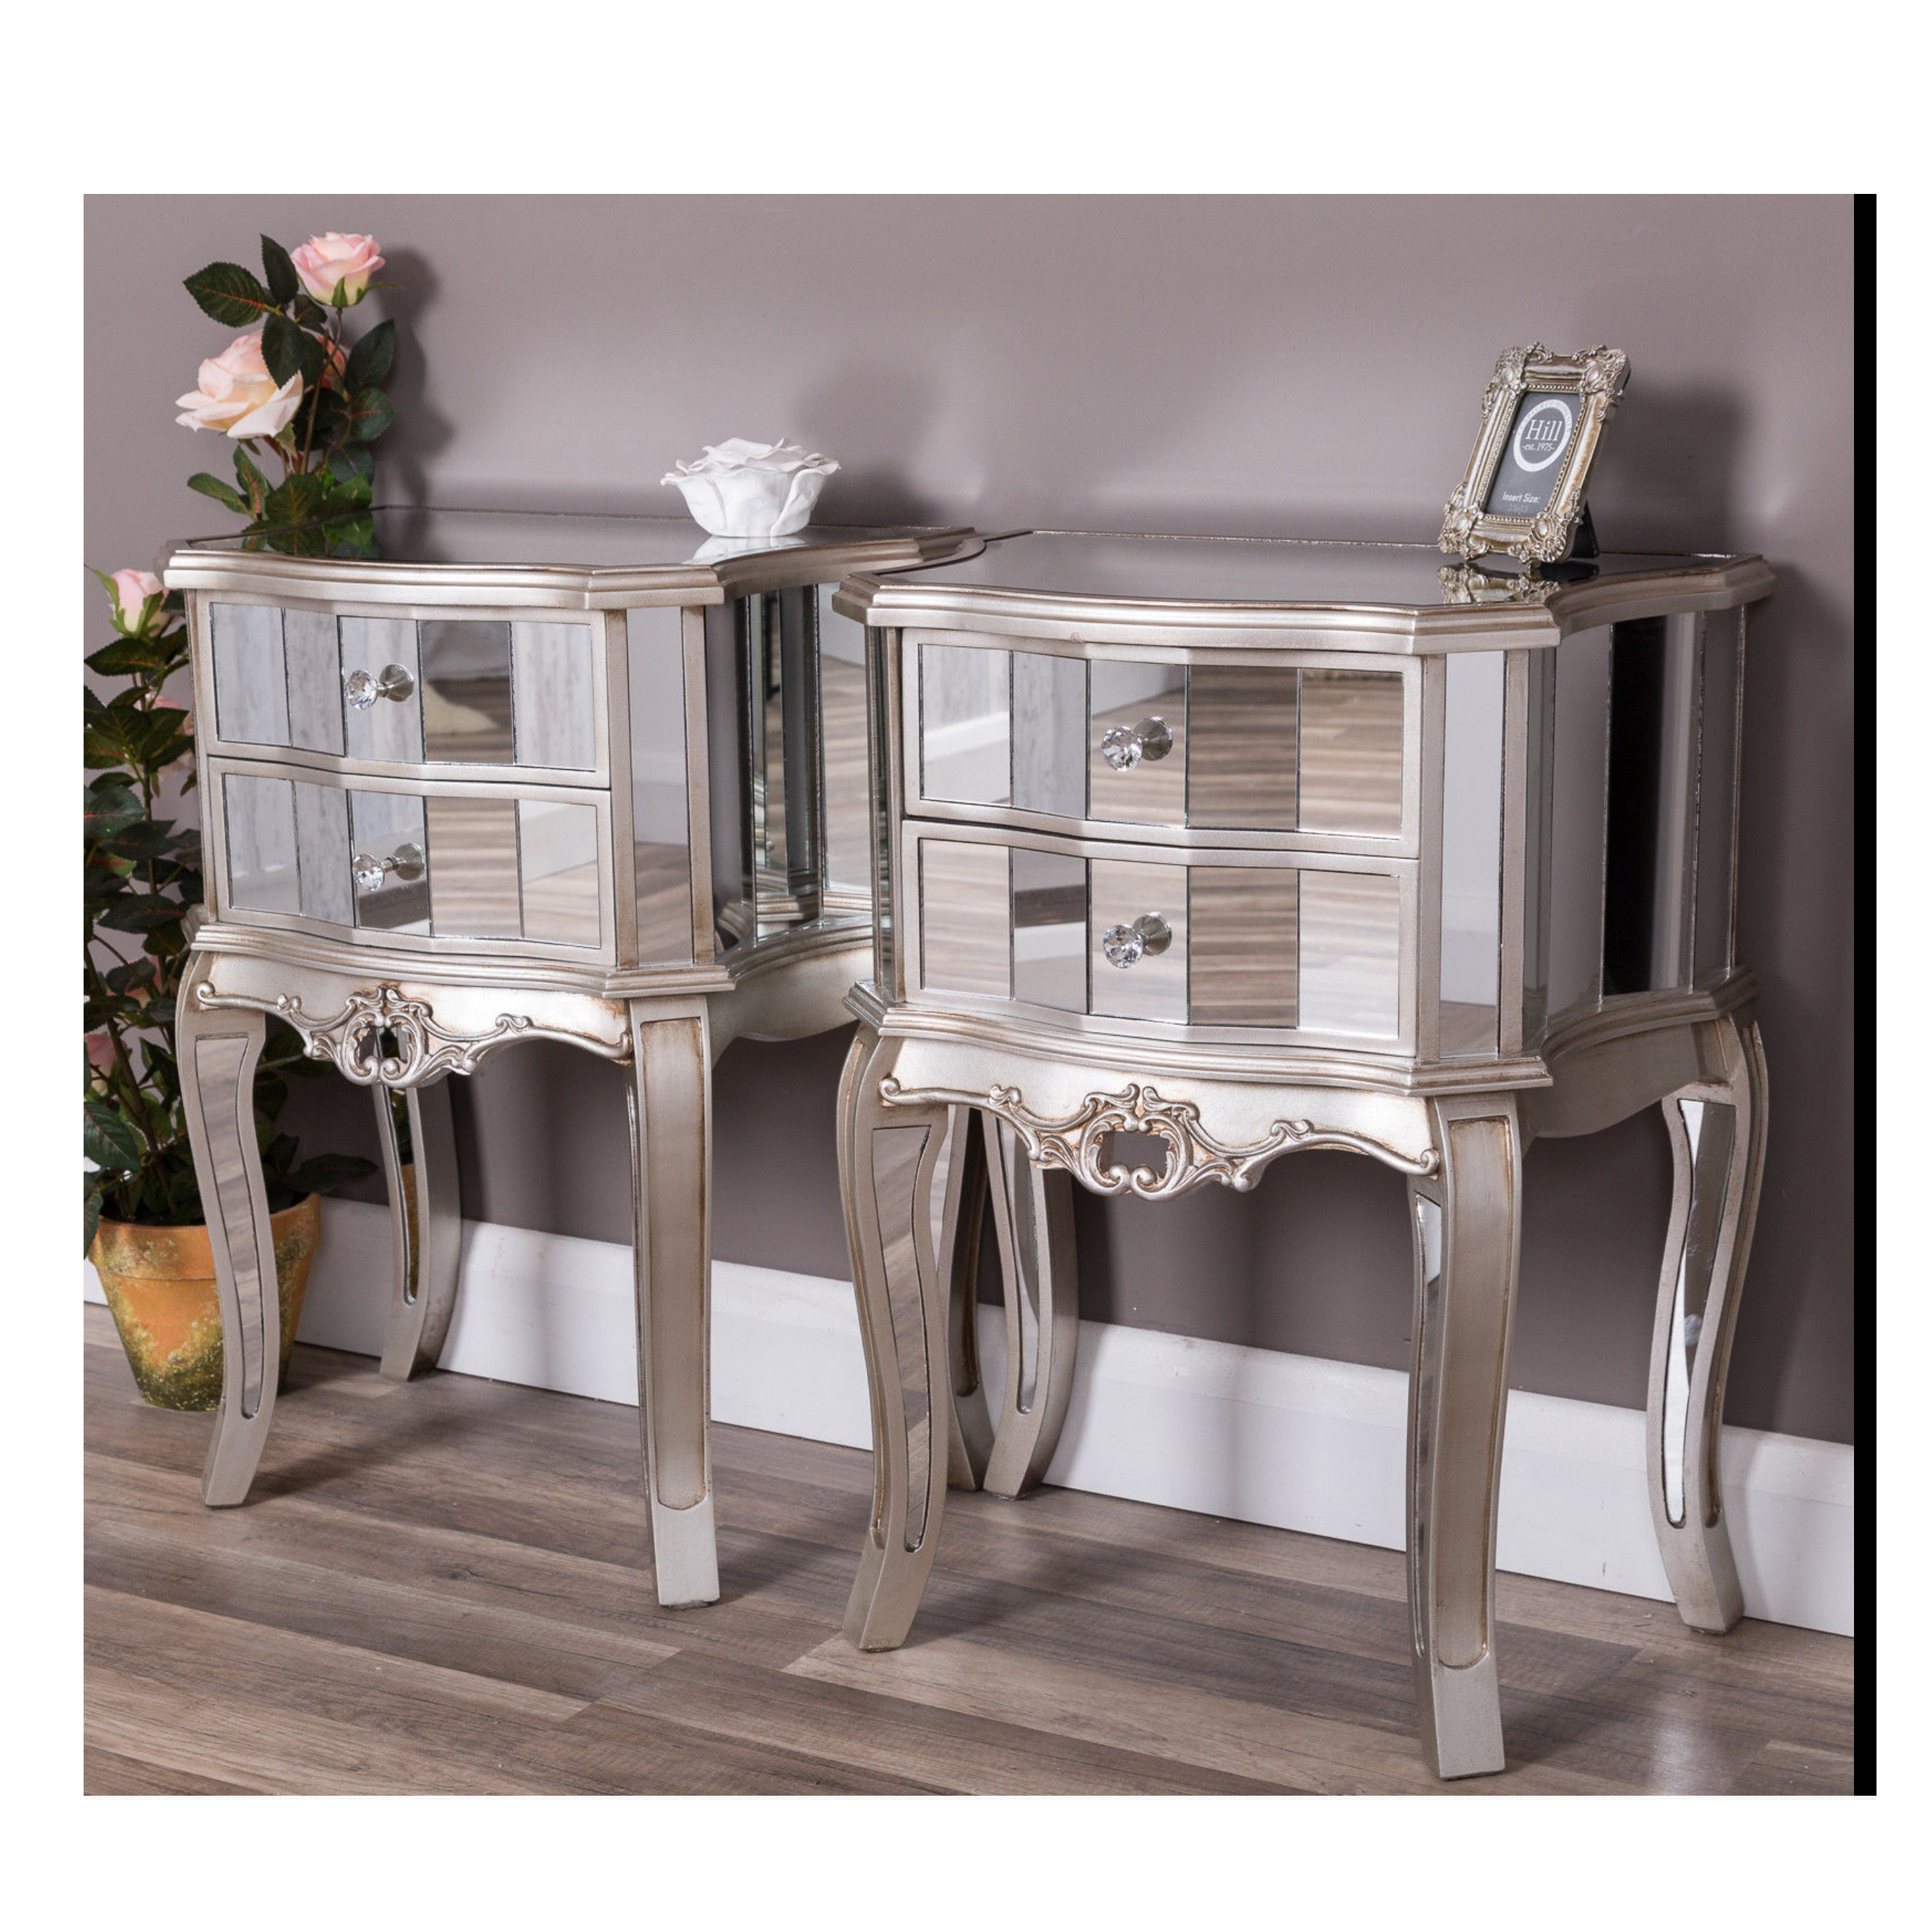 Luxury classic hot sale mirrored bed side night stand side table with drawers